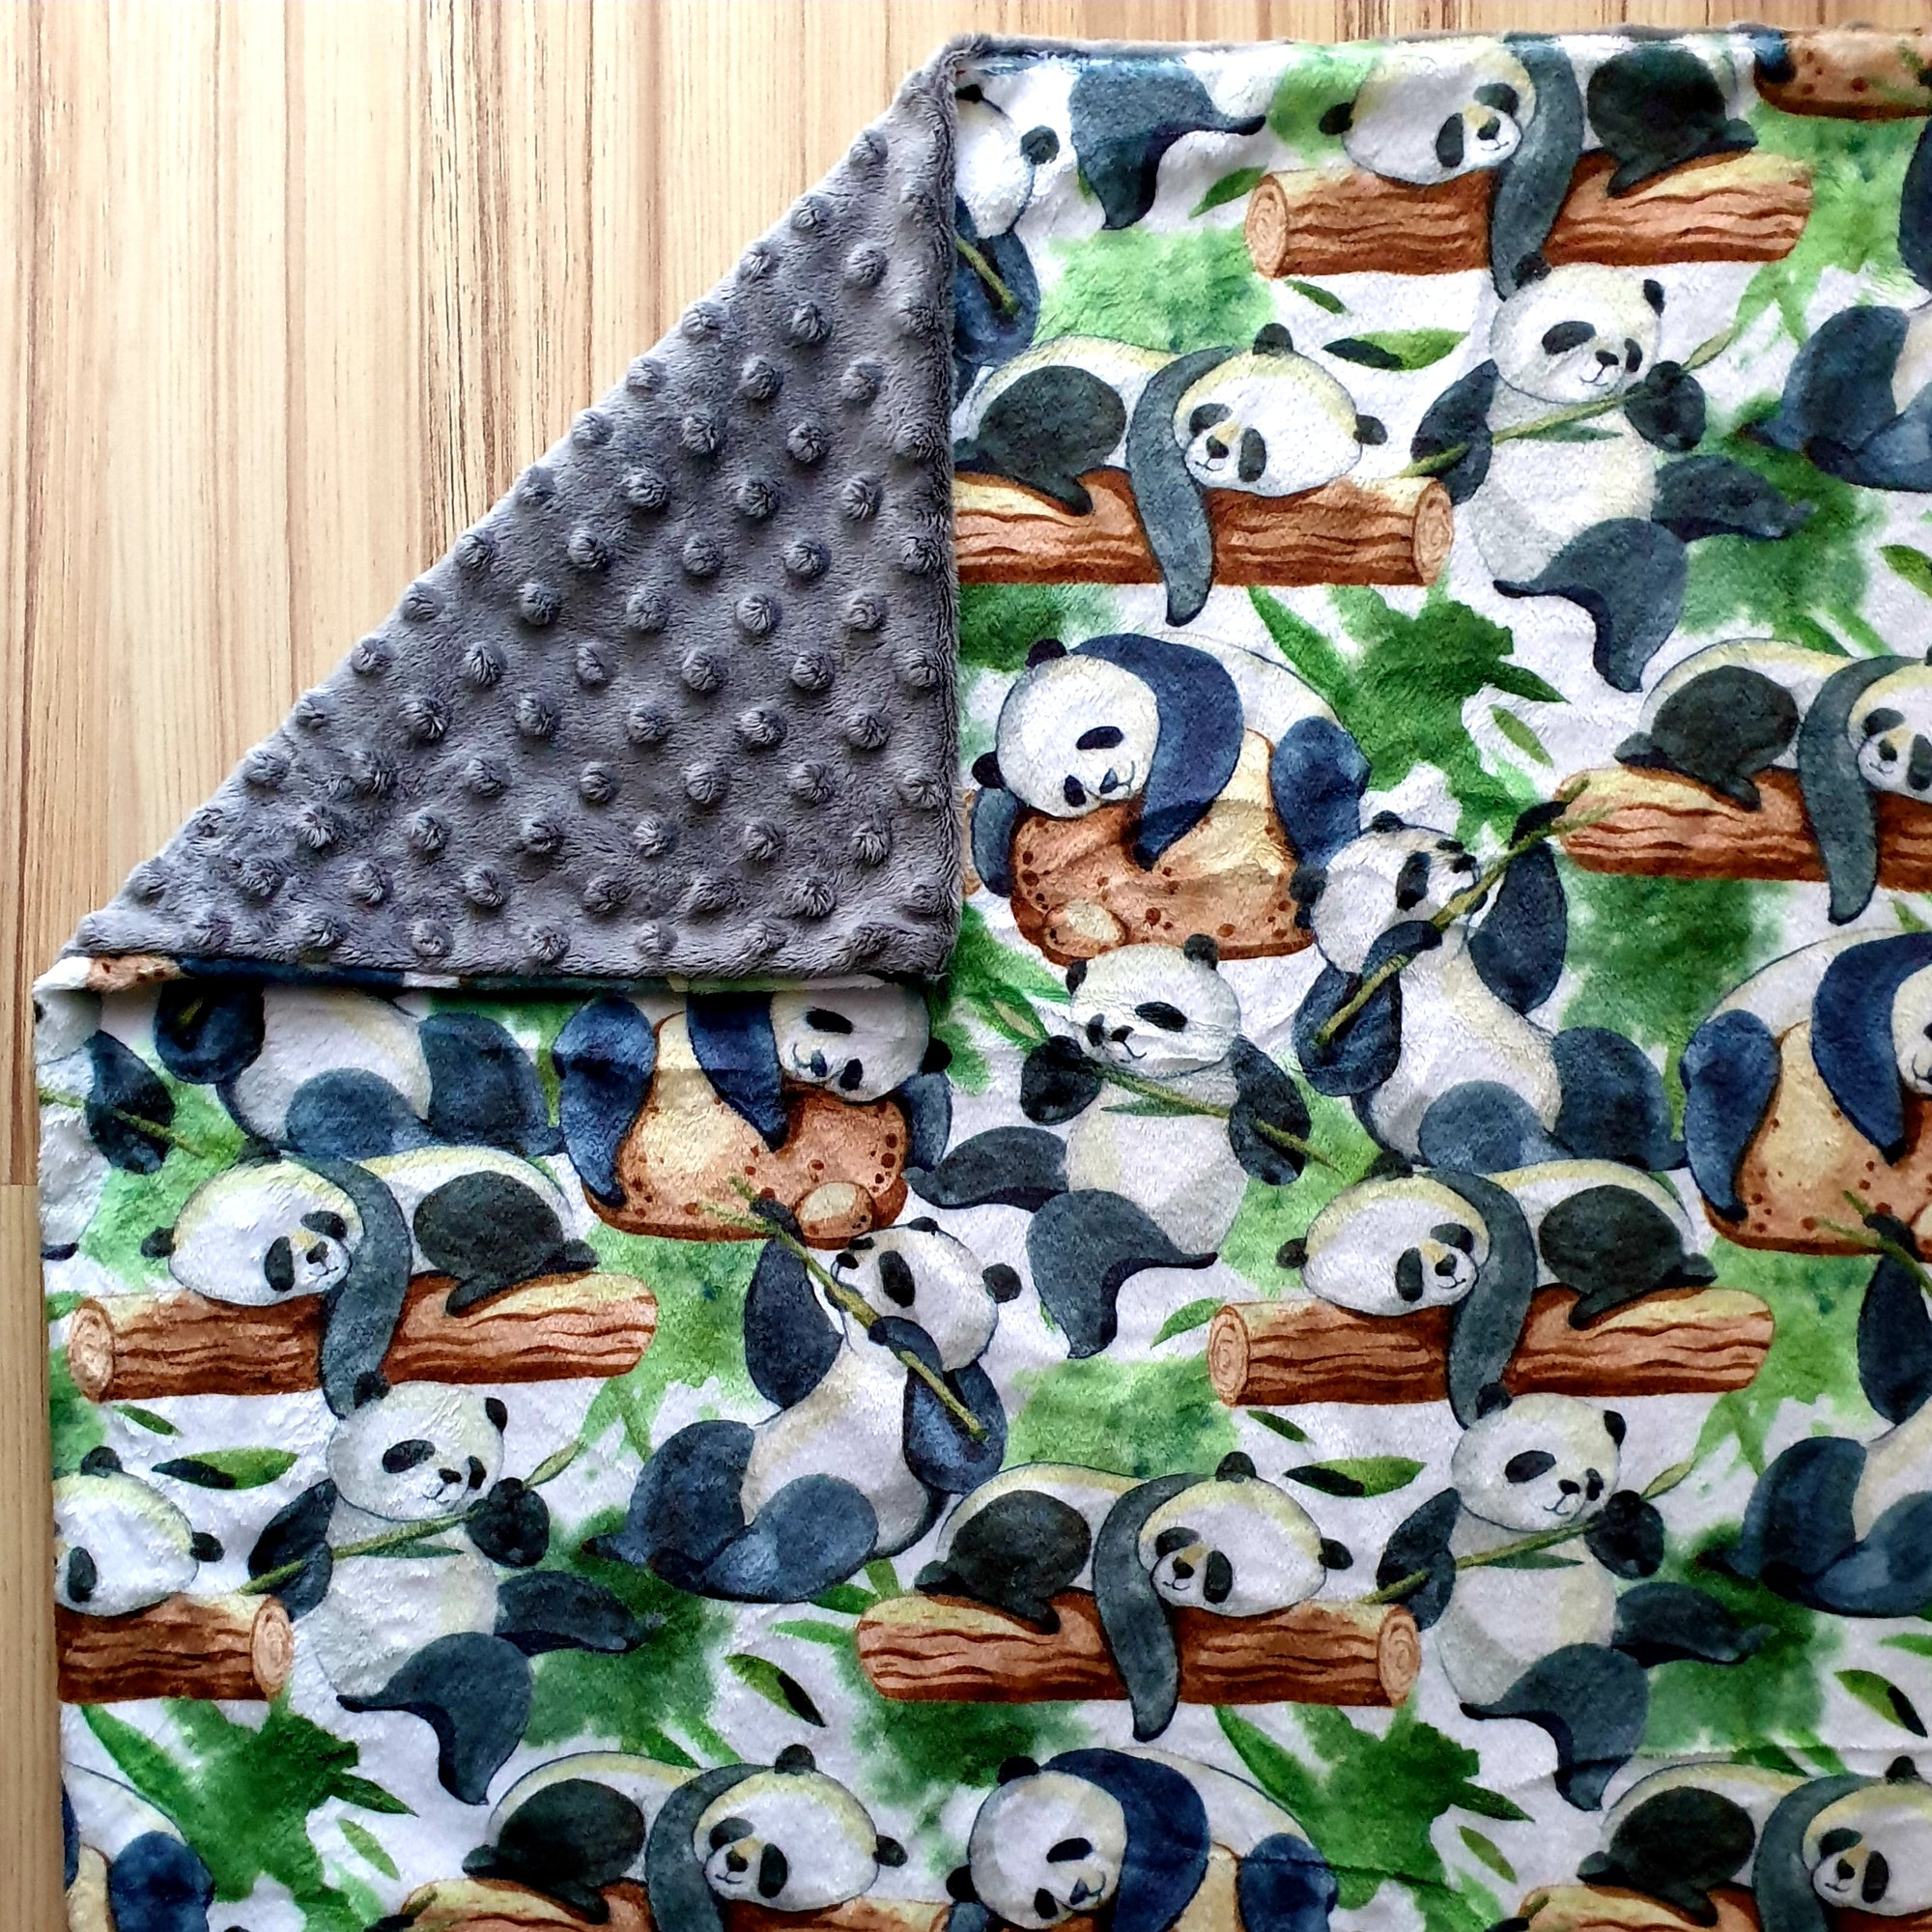 Plush Cover Only - for weighted blanket or crash bag